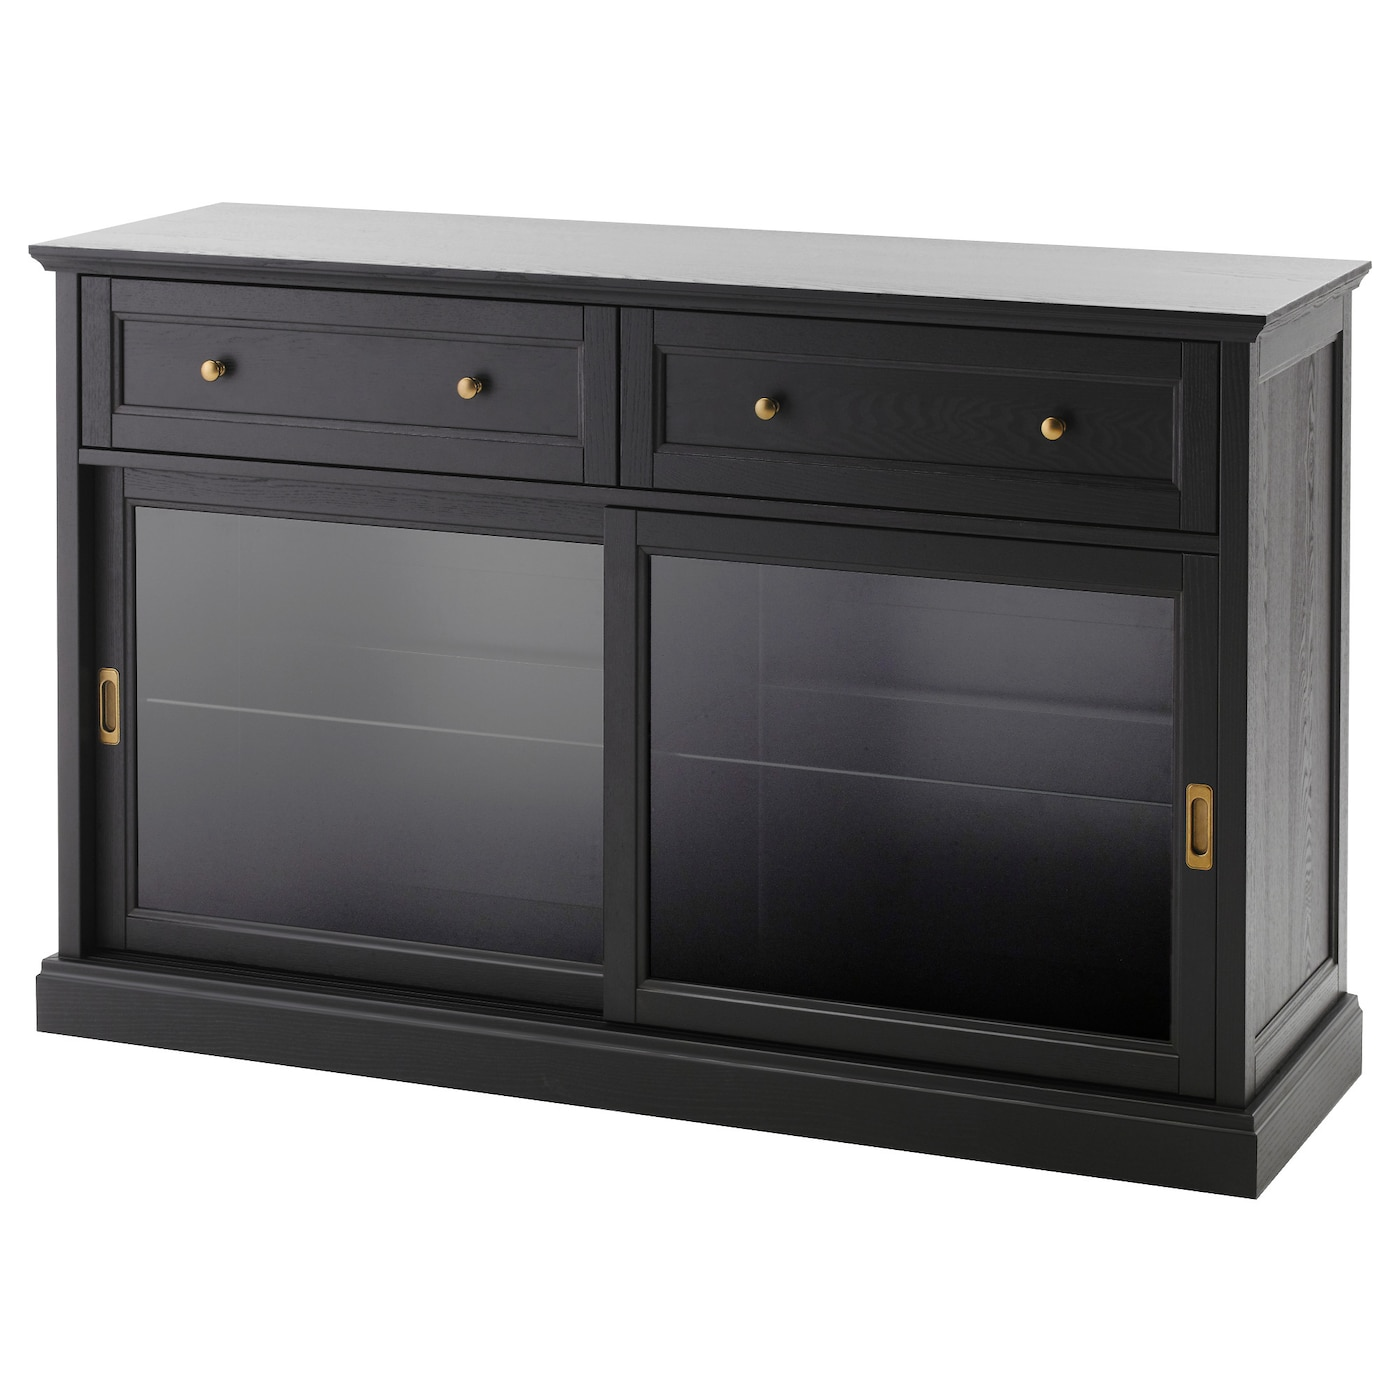 sideboards buffet cabinets ikea. Black Bedroom Furniture Sets. Home Design Ideas